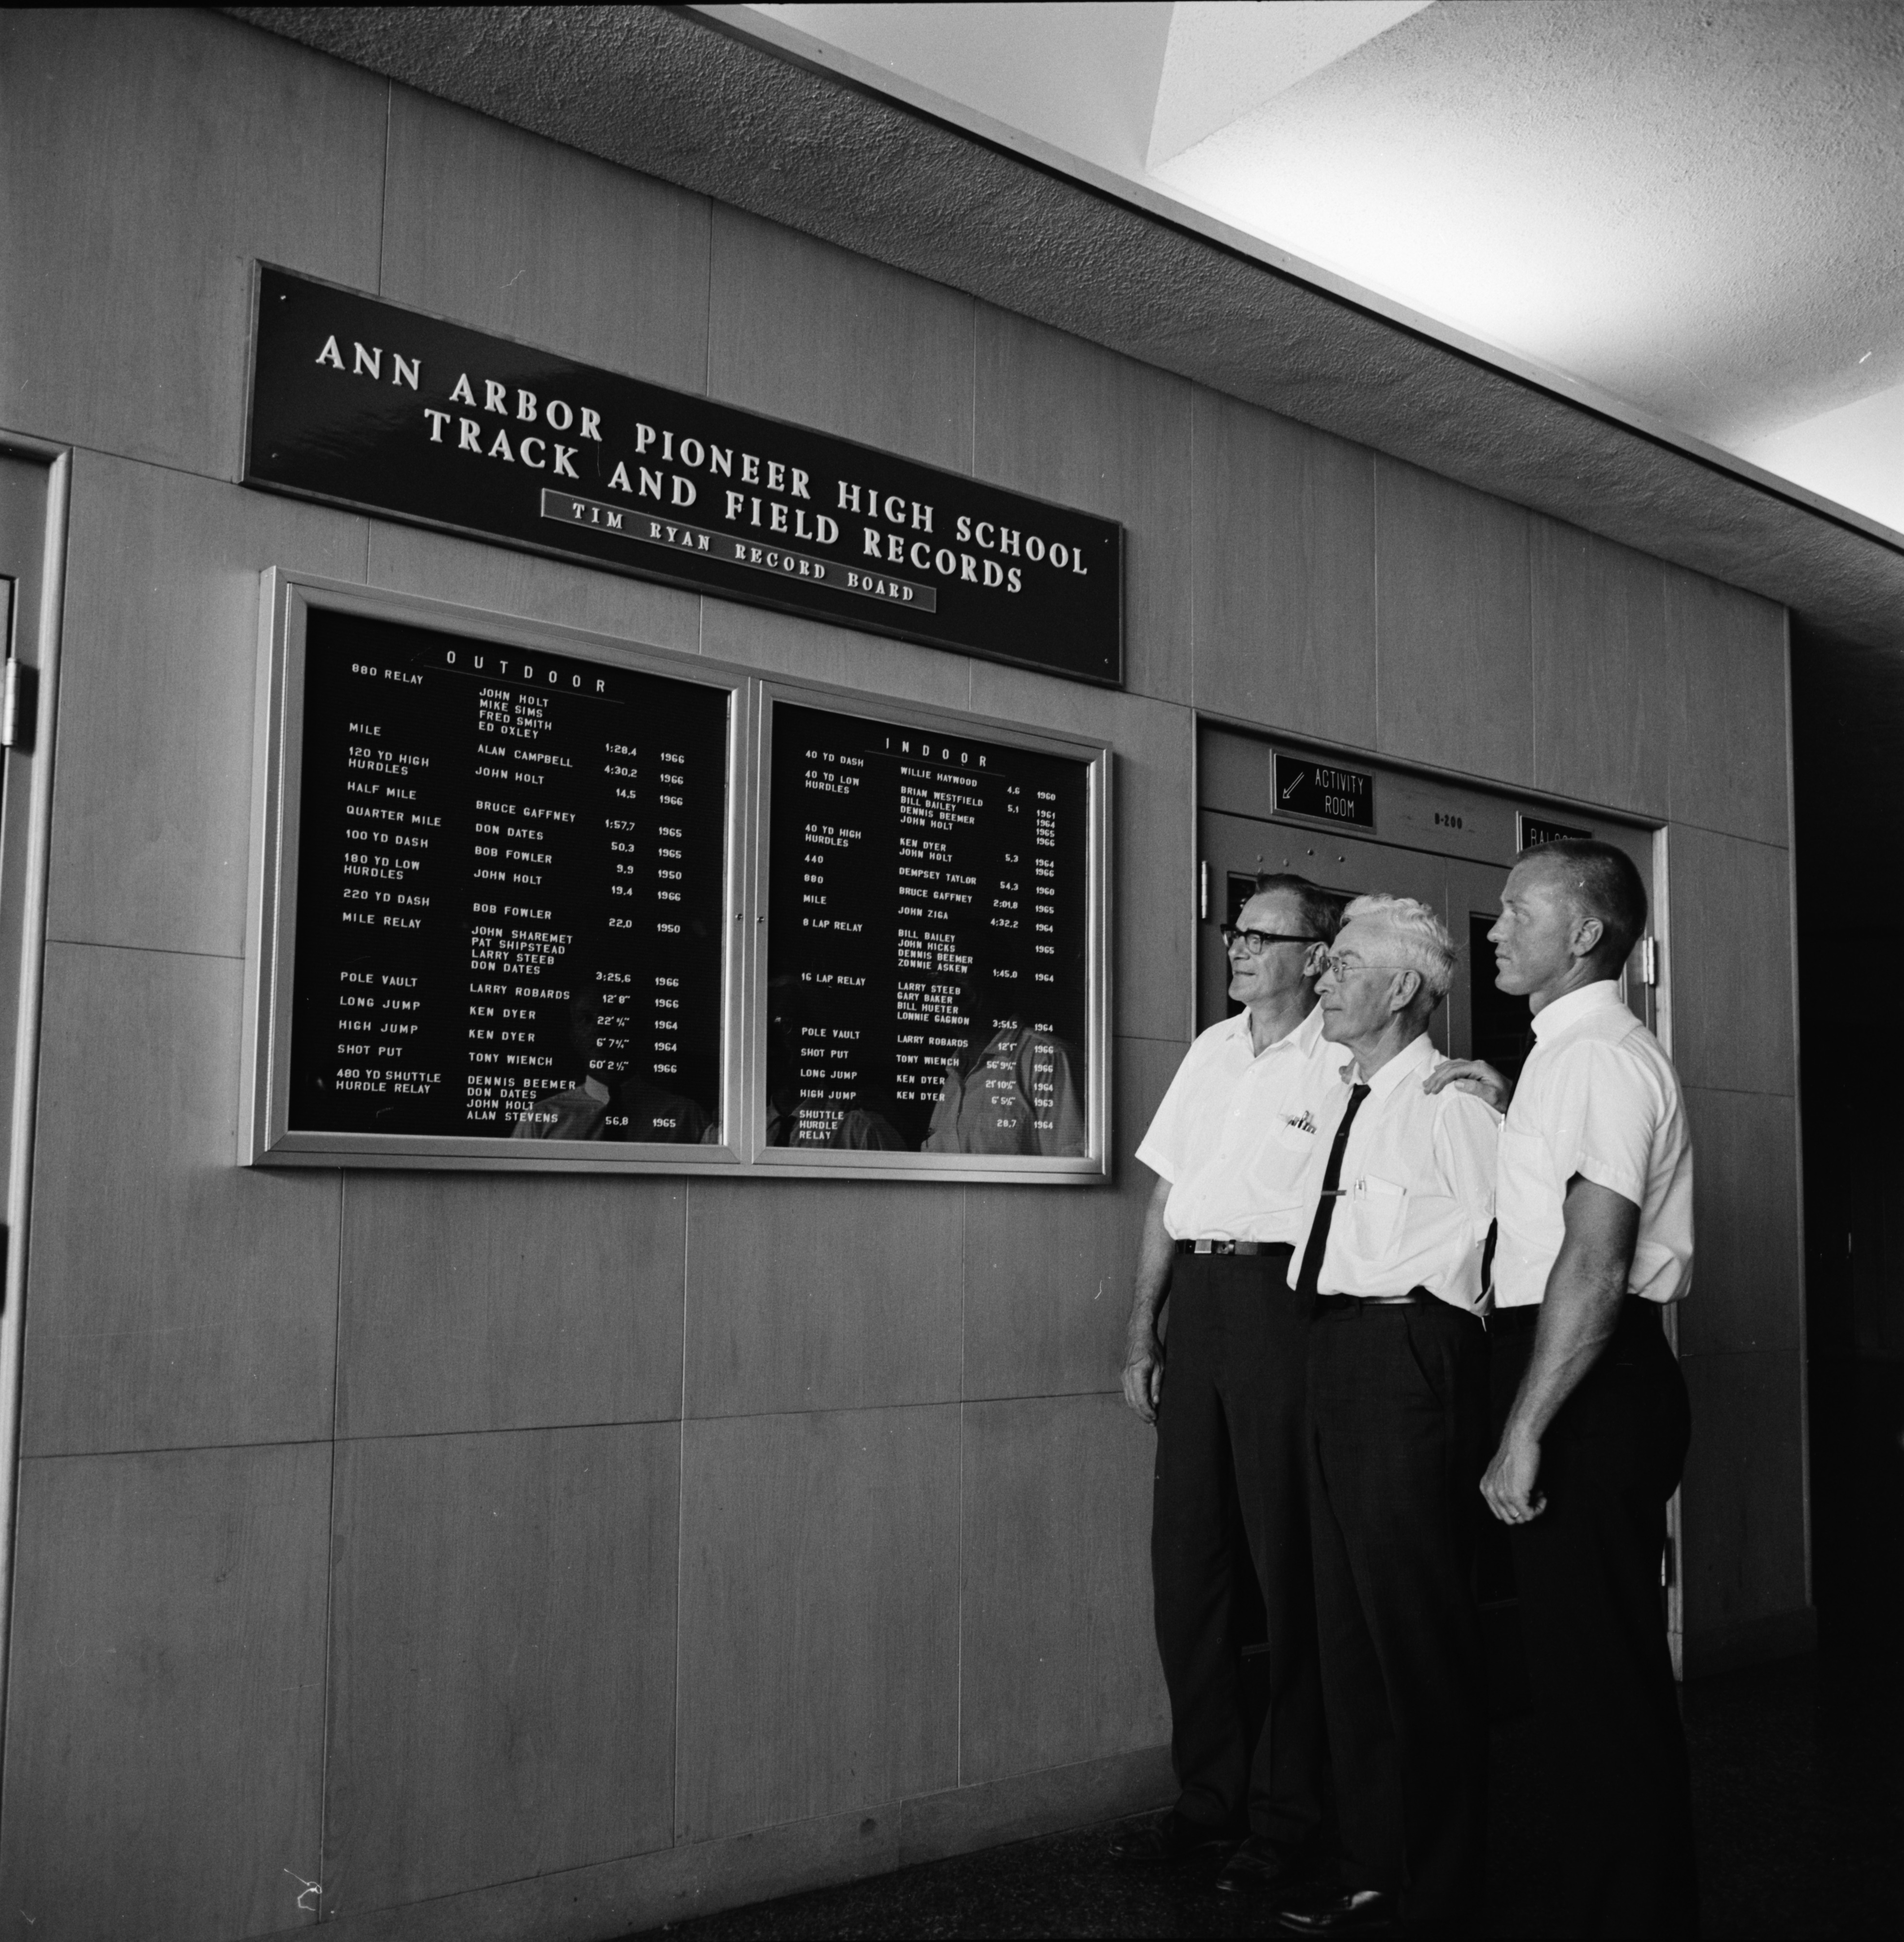 Ann Arbor High Dedicates Record Board to Former Track and Field Coach Tim Ryan, July 1966 image